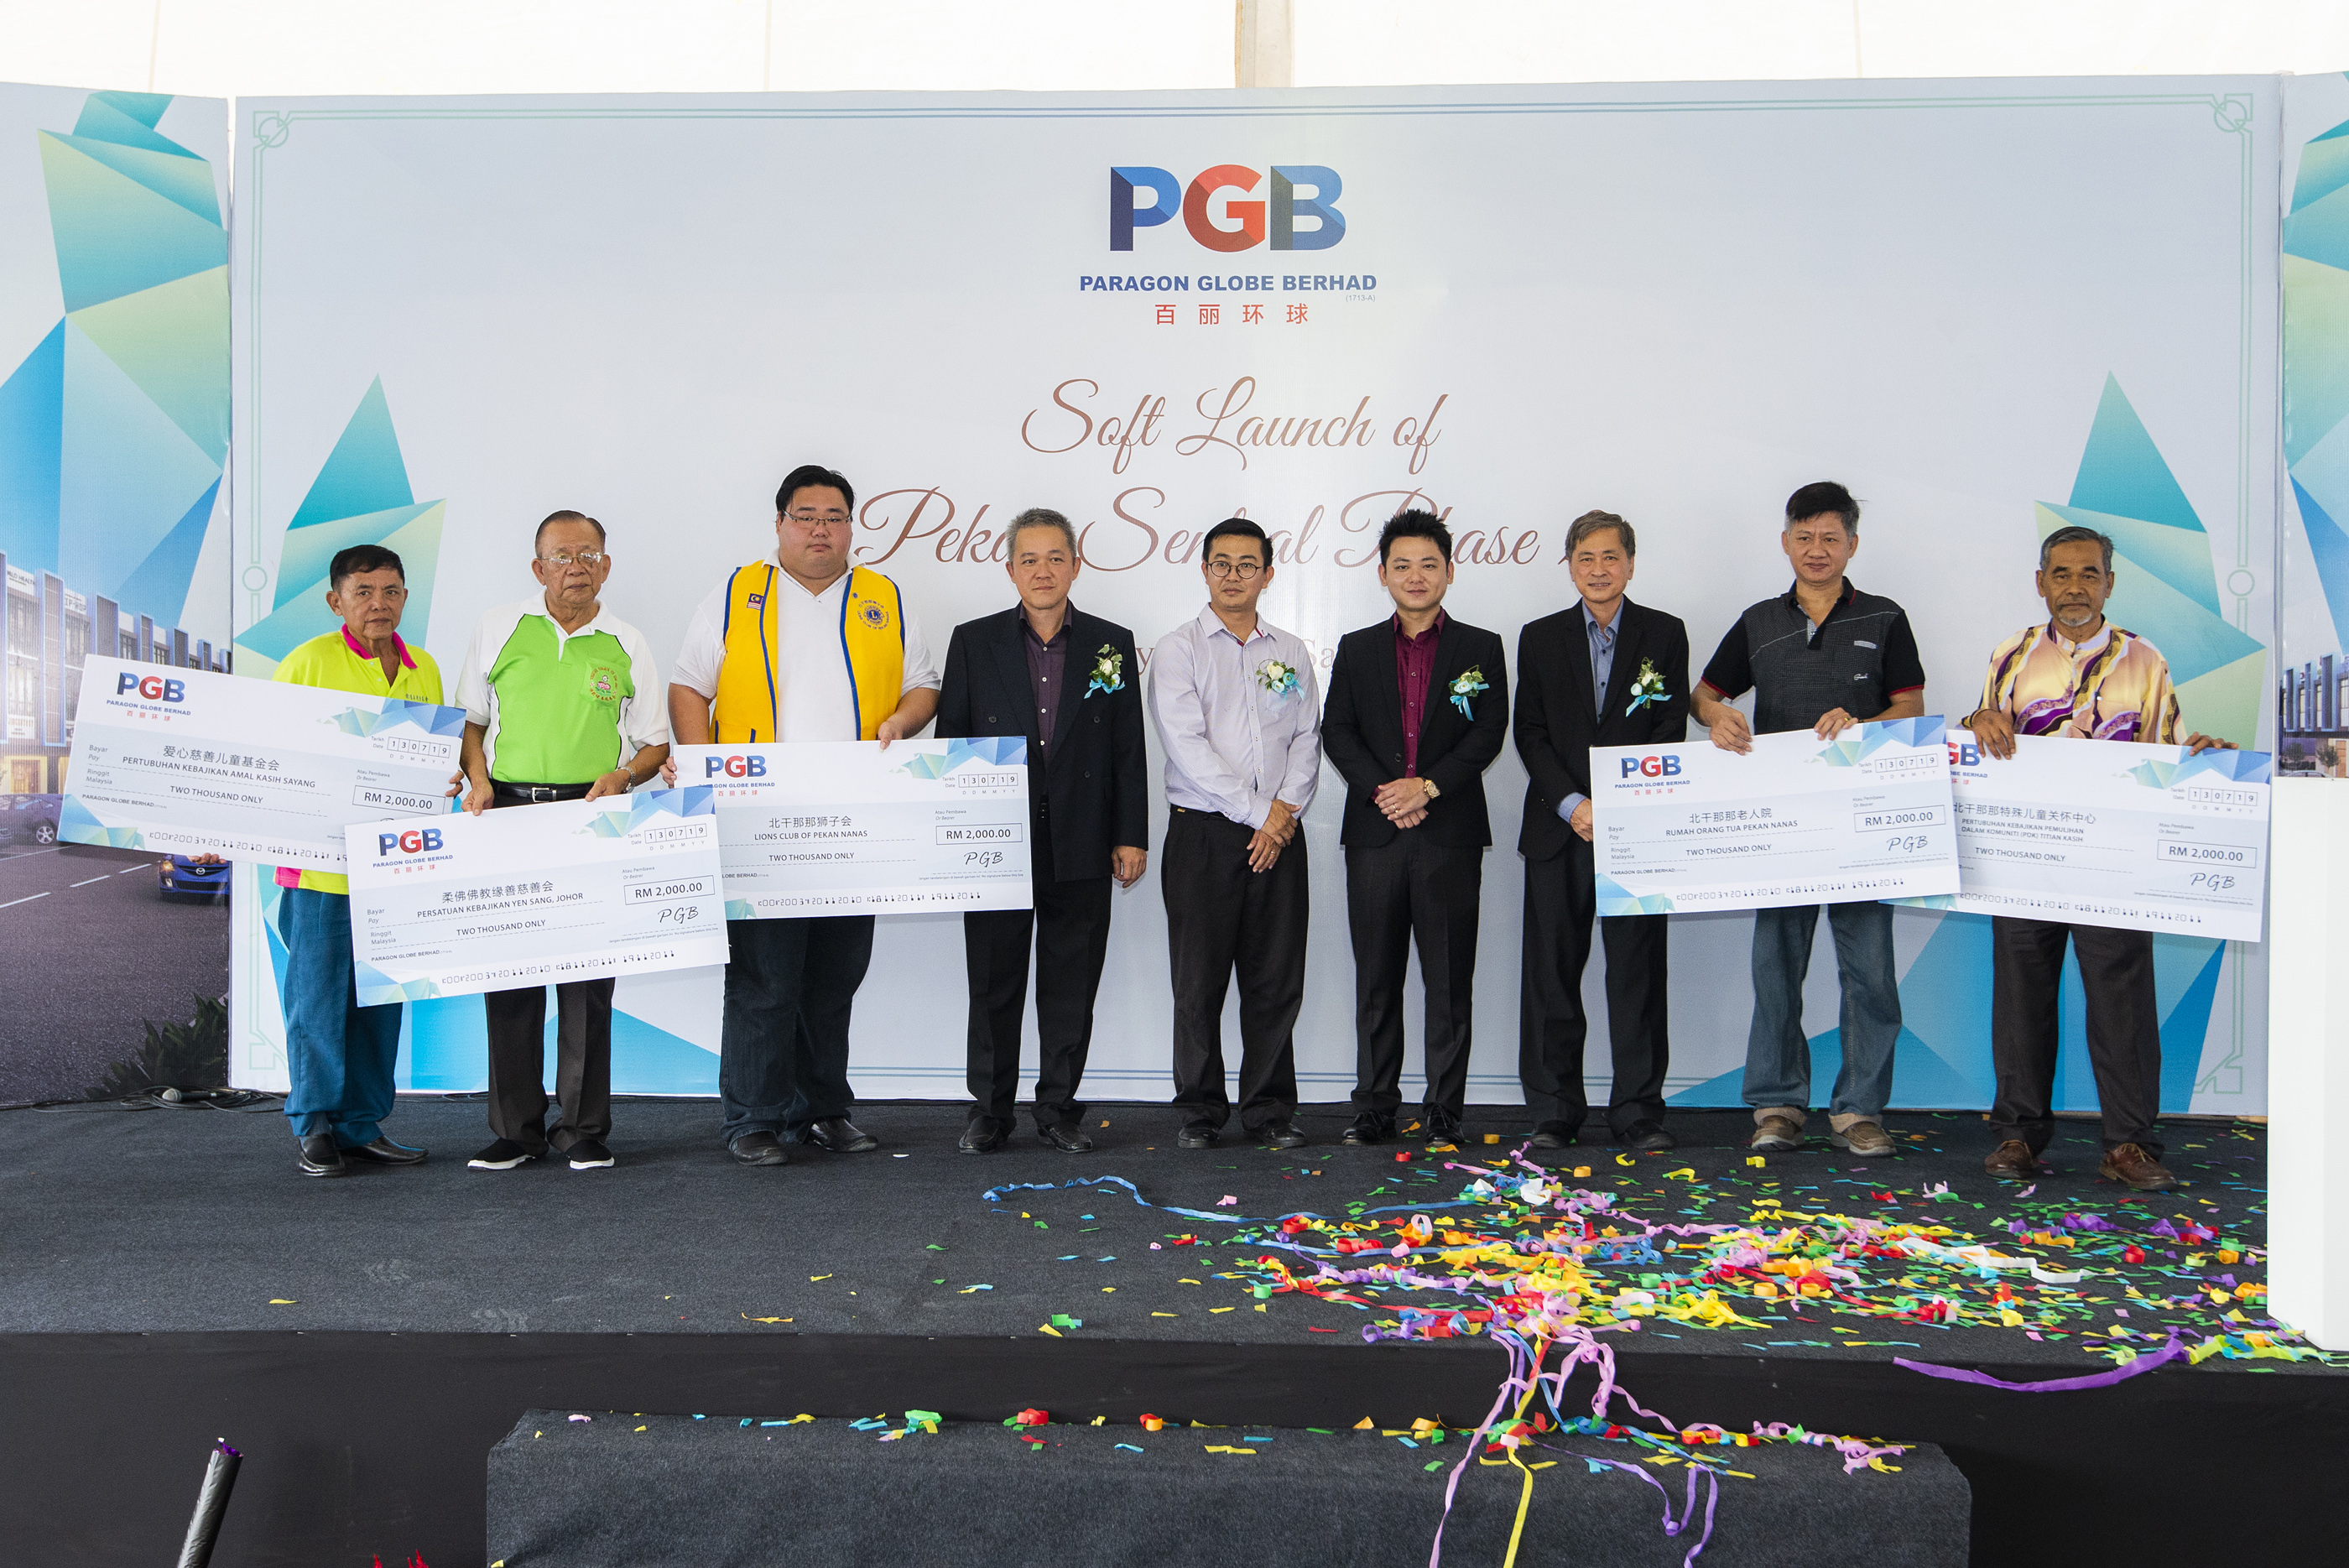 Paragon Globe Berhad is also playing its part as a good corporate citizen by contributing RM10,000 to 5 non-profit organization, with RM2000.00 per each.